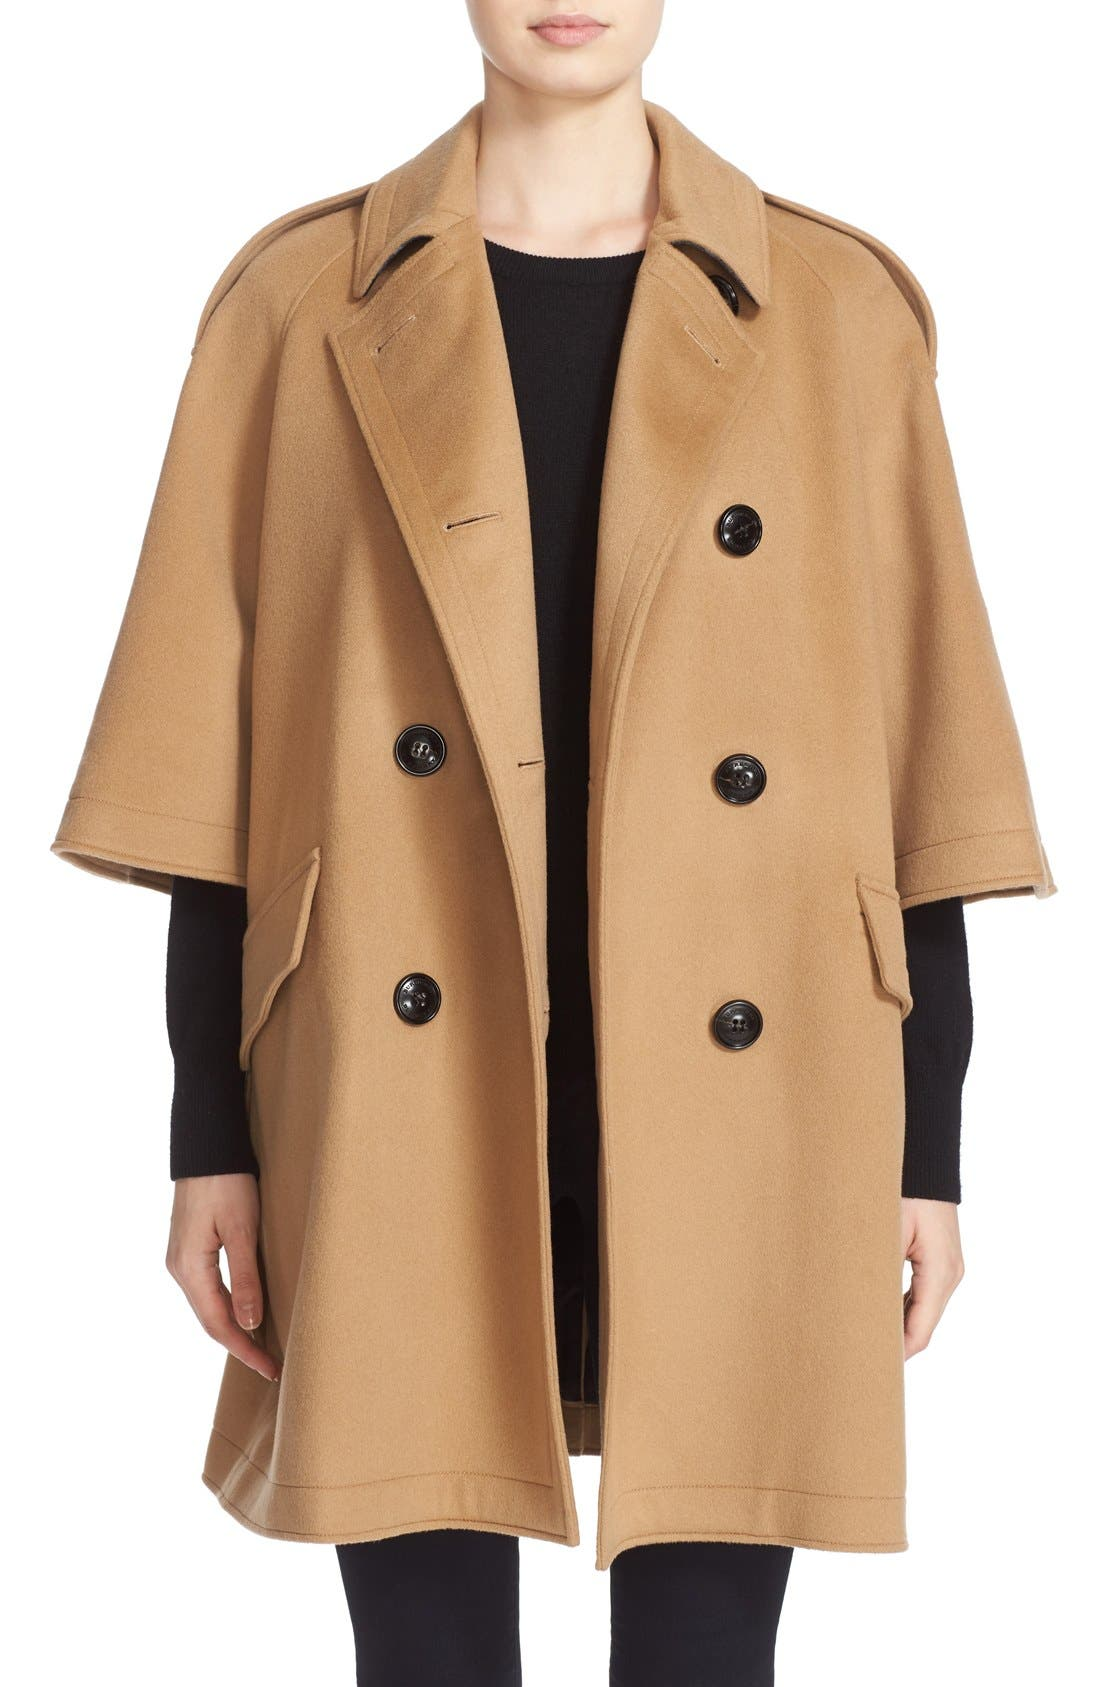 Dennington Trench Cape Coat,                         Main,                         color, 231